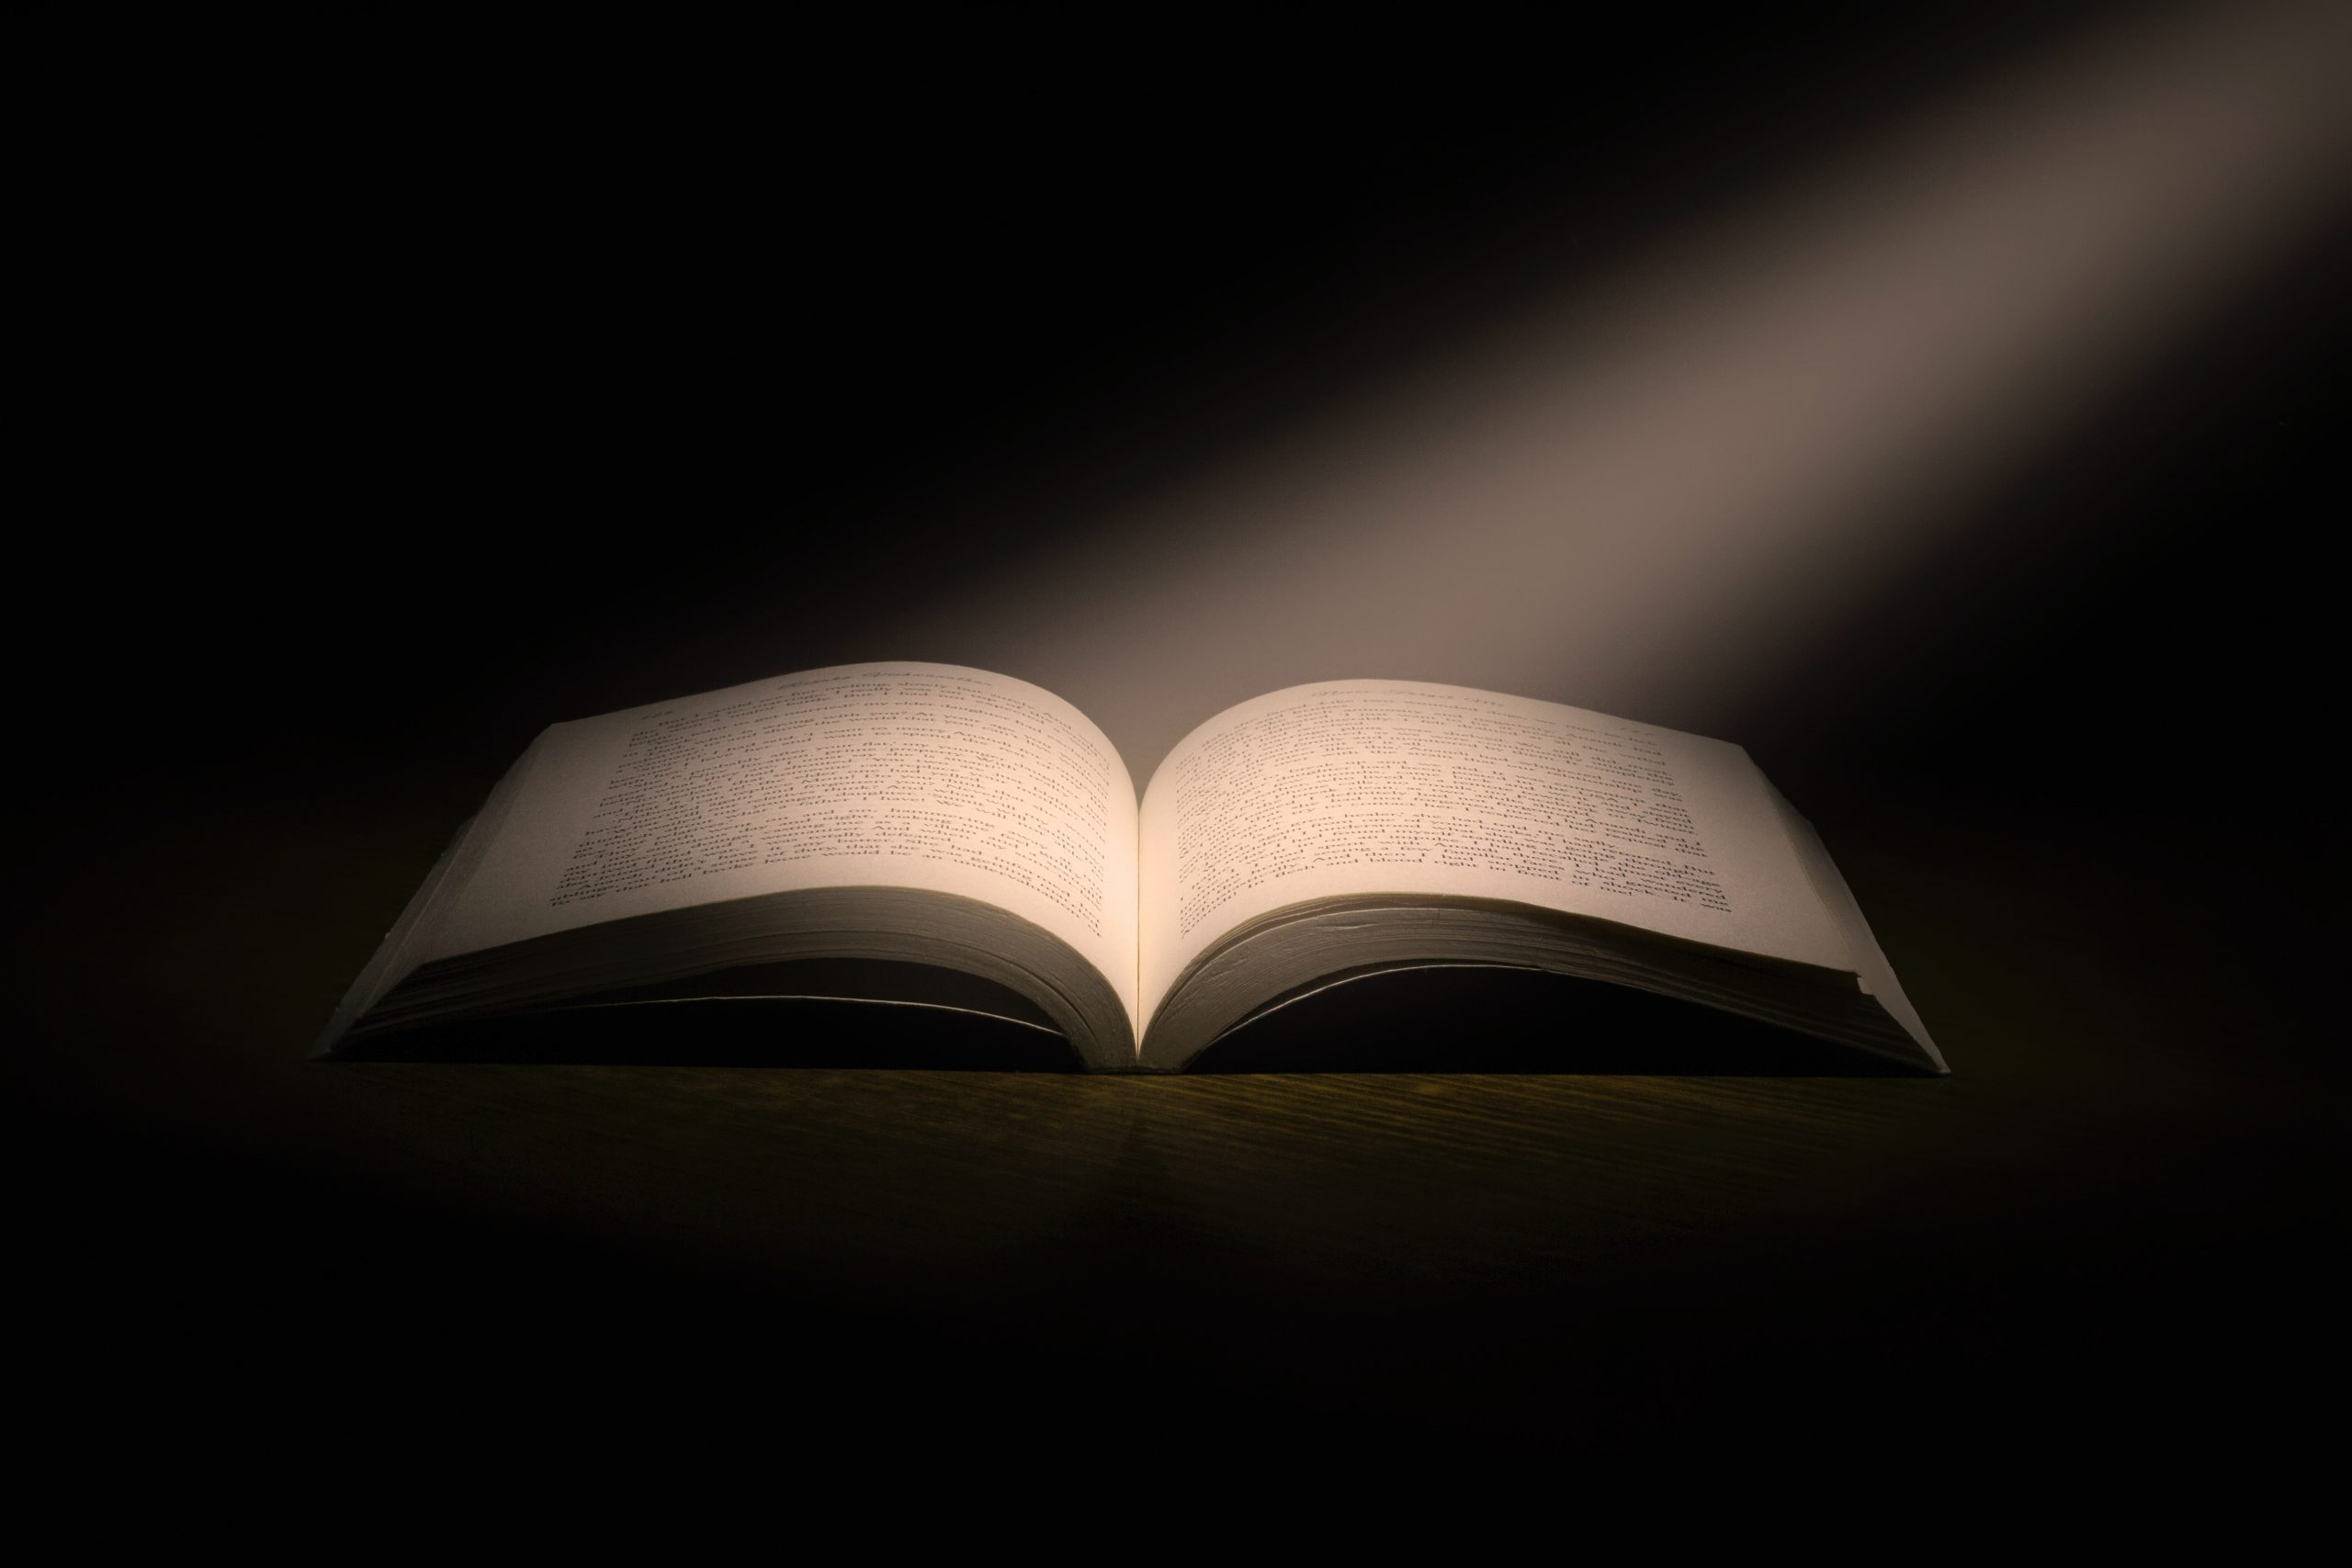 open book with light on the pages